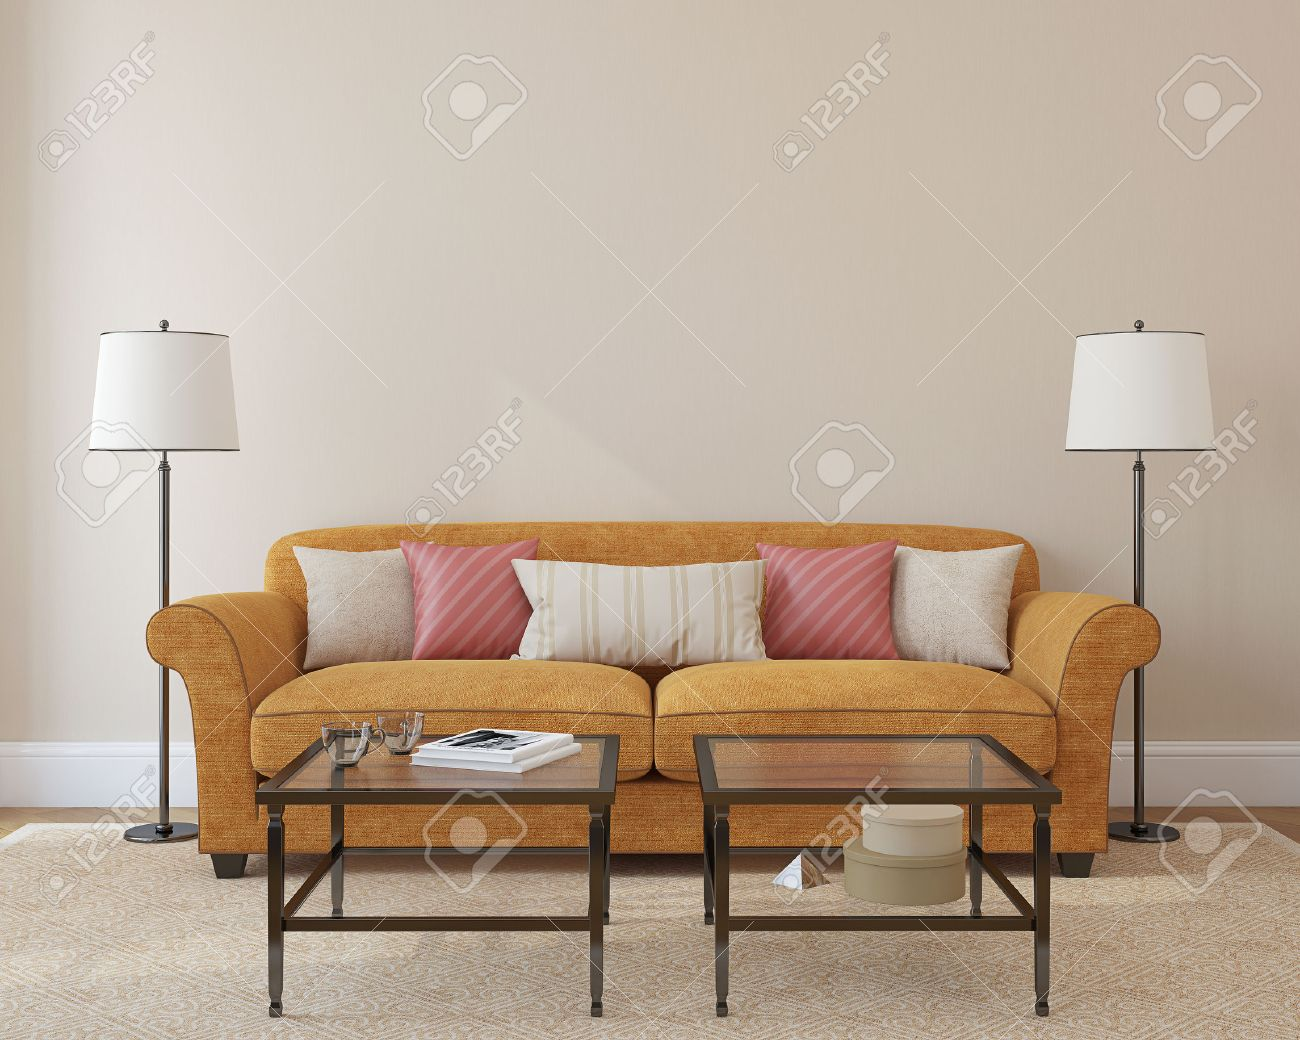 Orange modern living room - Modern Living Room Interior With Orange Couch Near Empty Beige Wall 3d Render